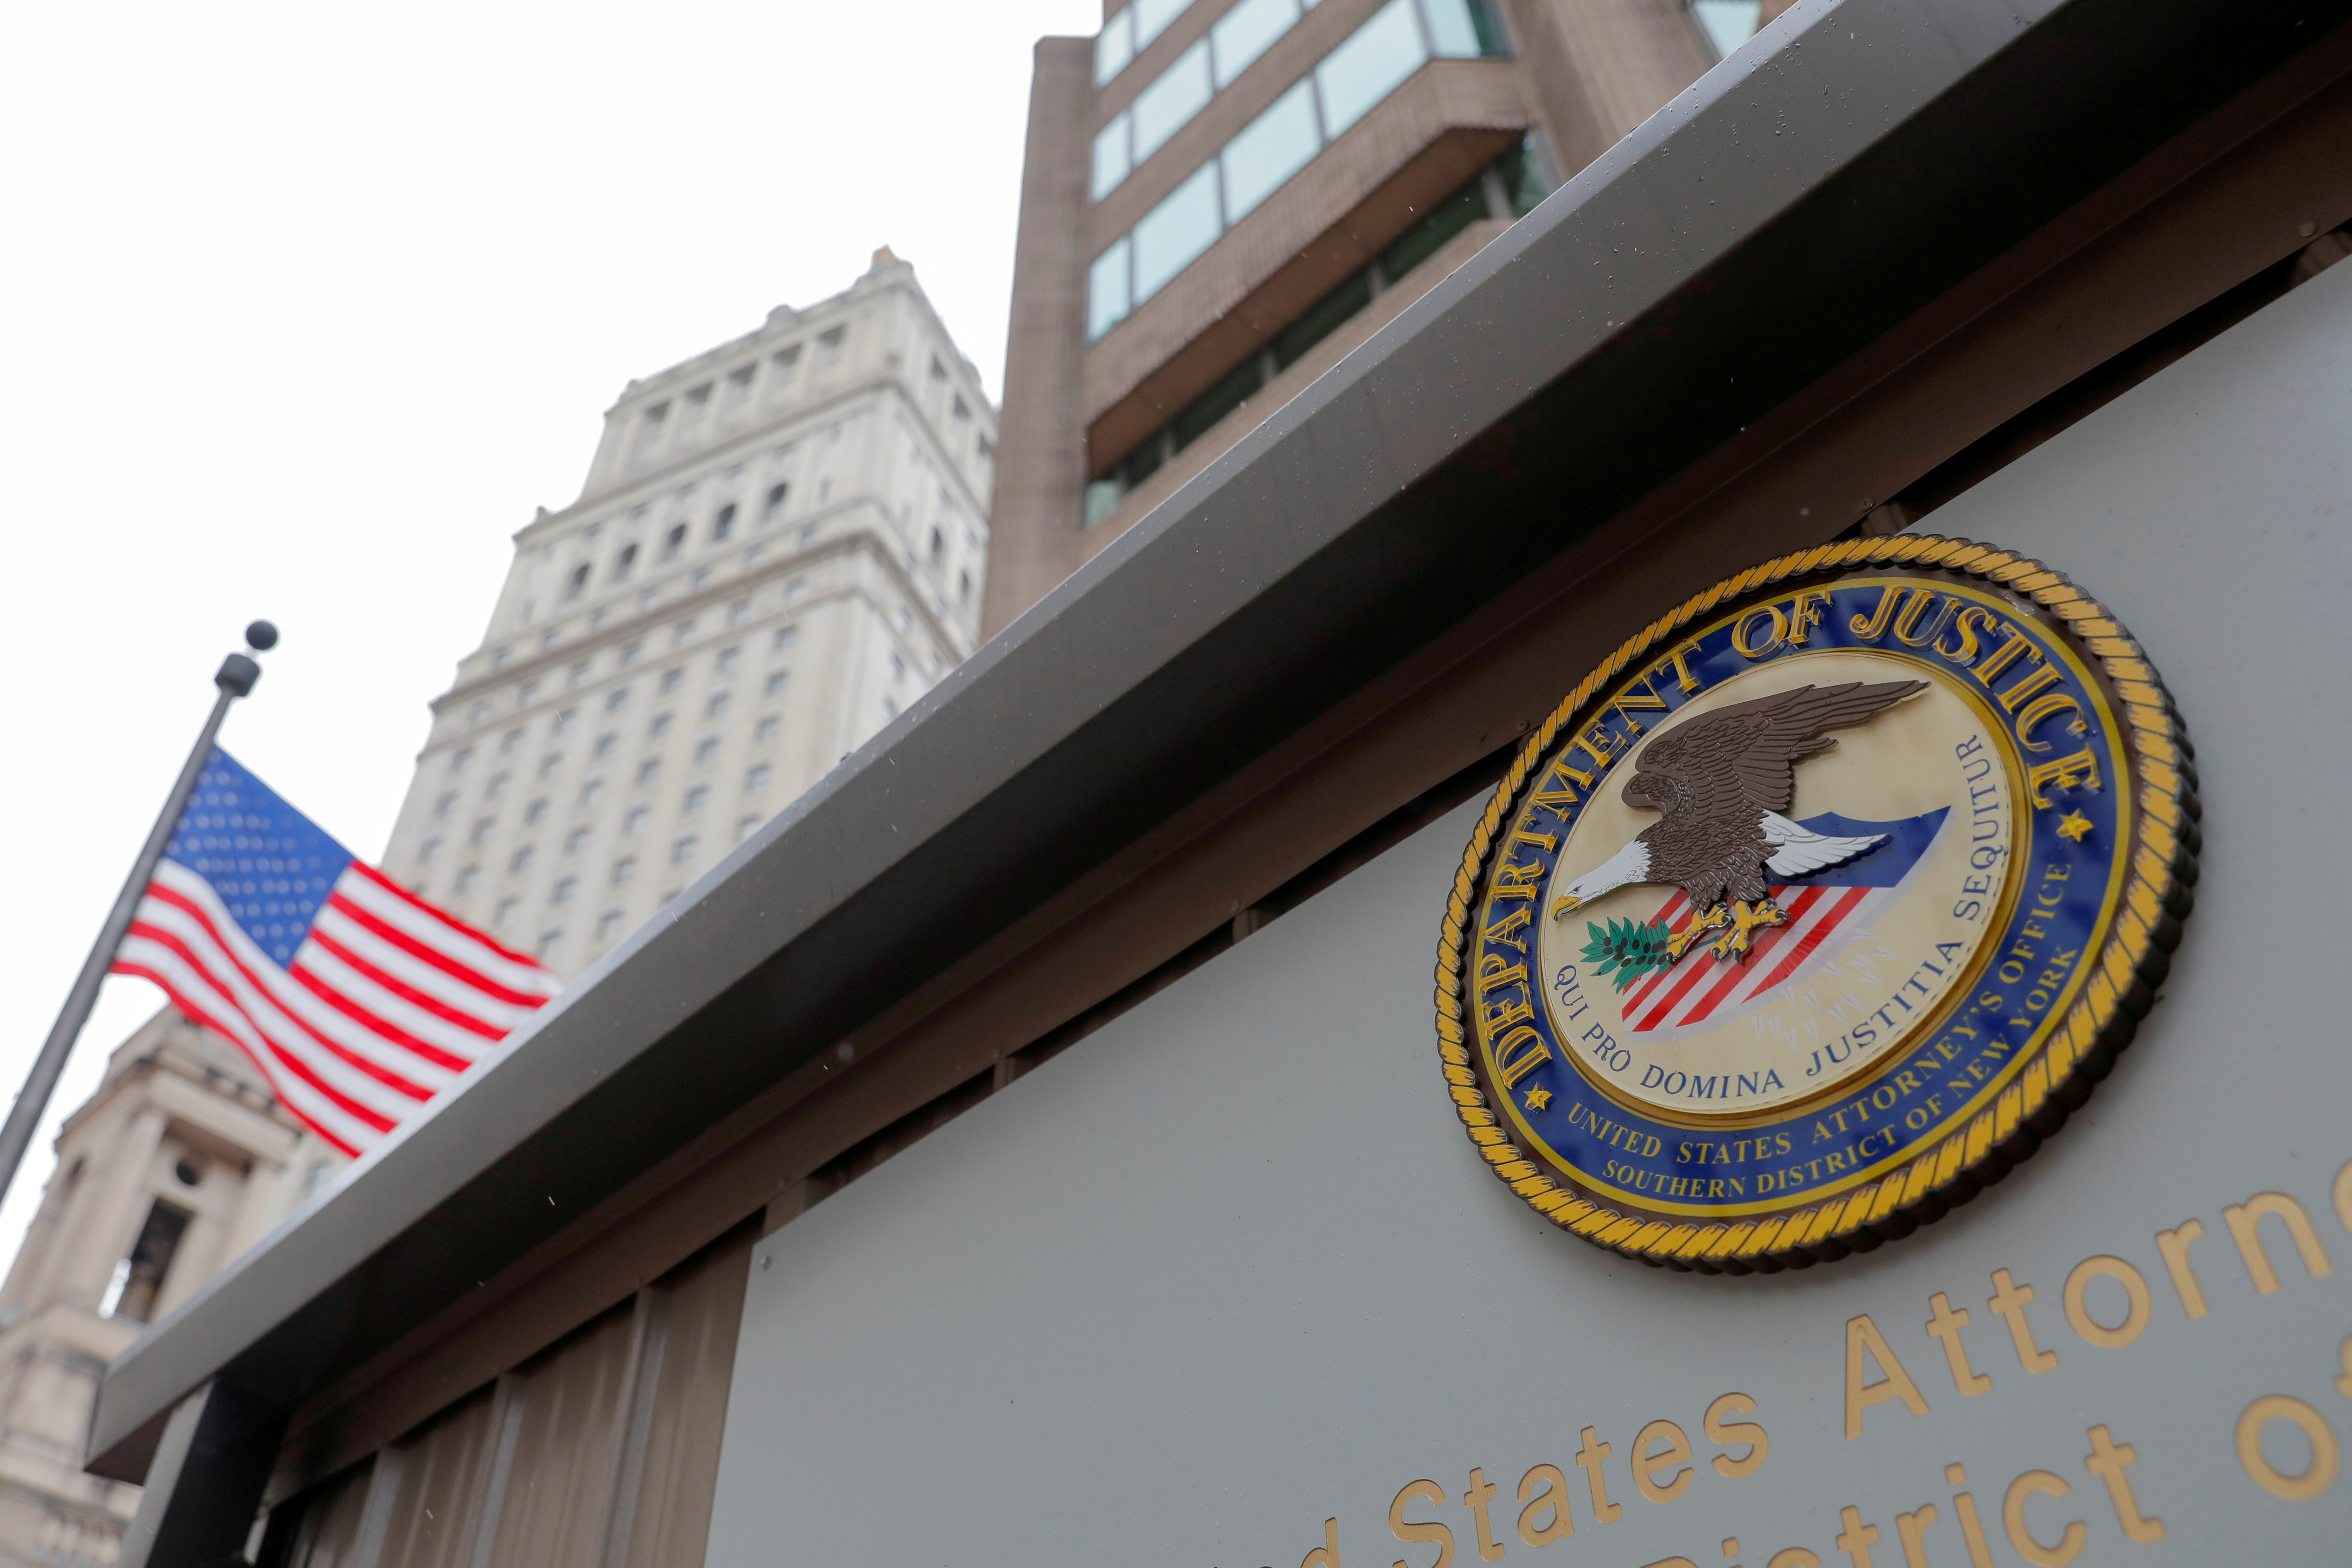 The seal of the United States Department of Justice is seen on the building exterior of the United States Attorney's Office of the Southern District of New York in Manhattan, New York City, U.S., August 17, 2020. REUTERS/Andrew Kelly